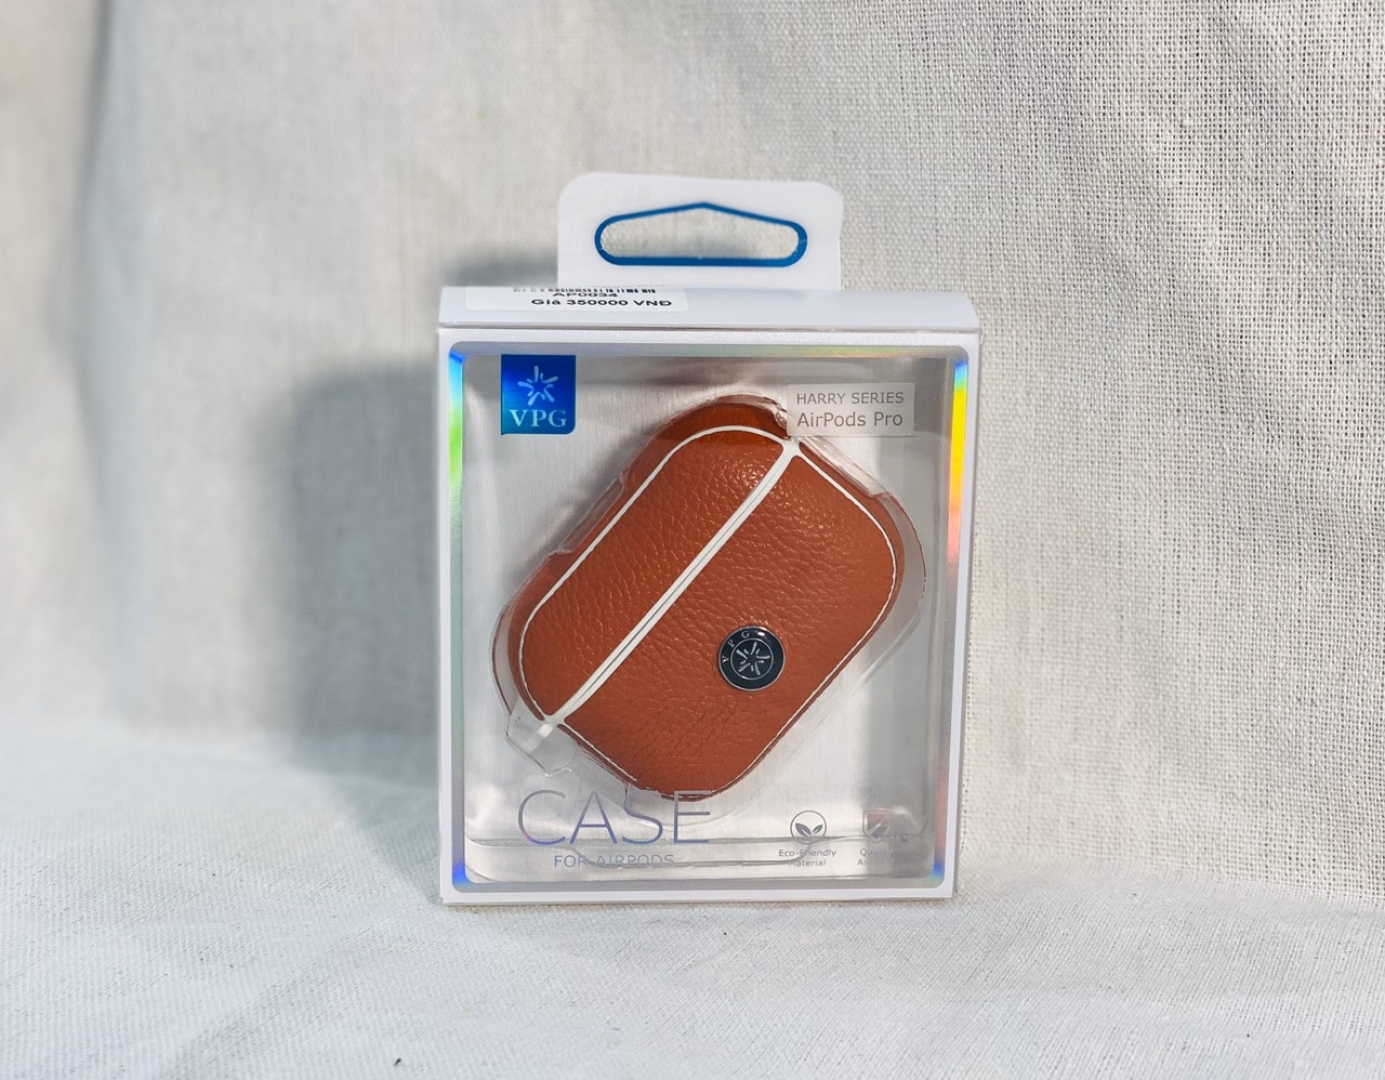 Case Apple Airpod Pro 031QC